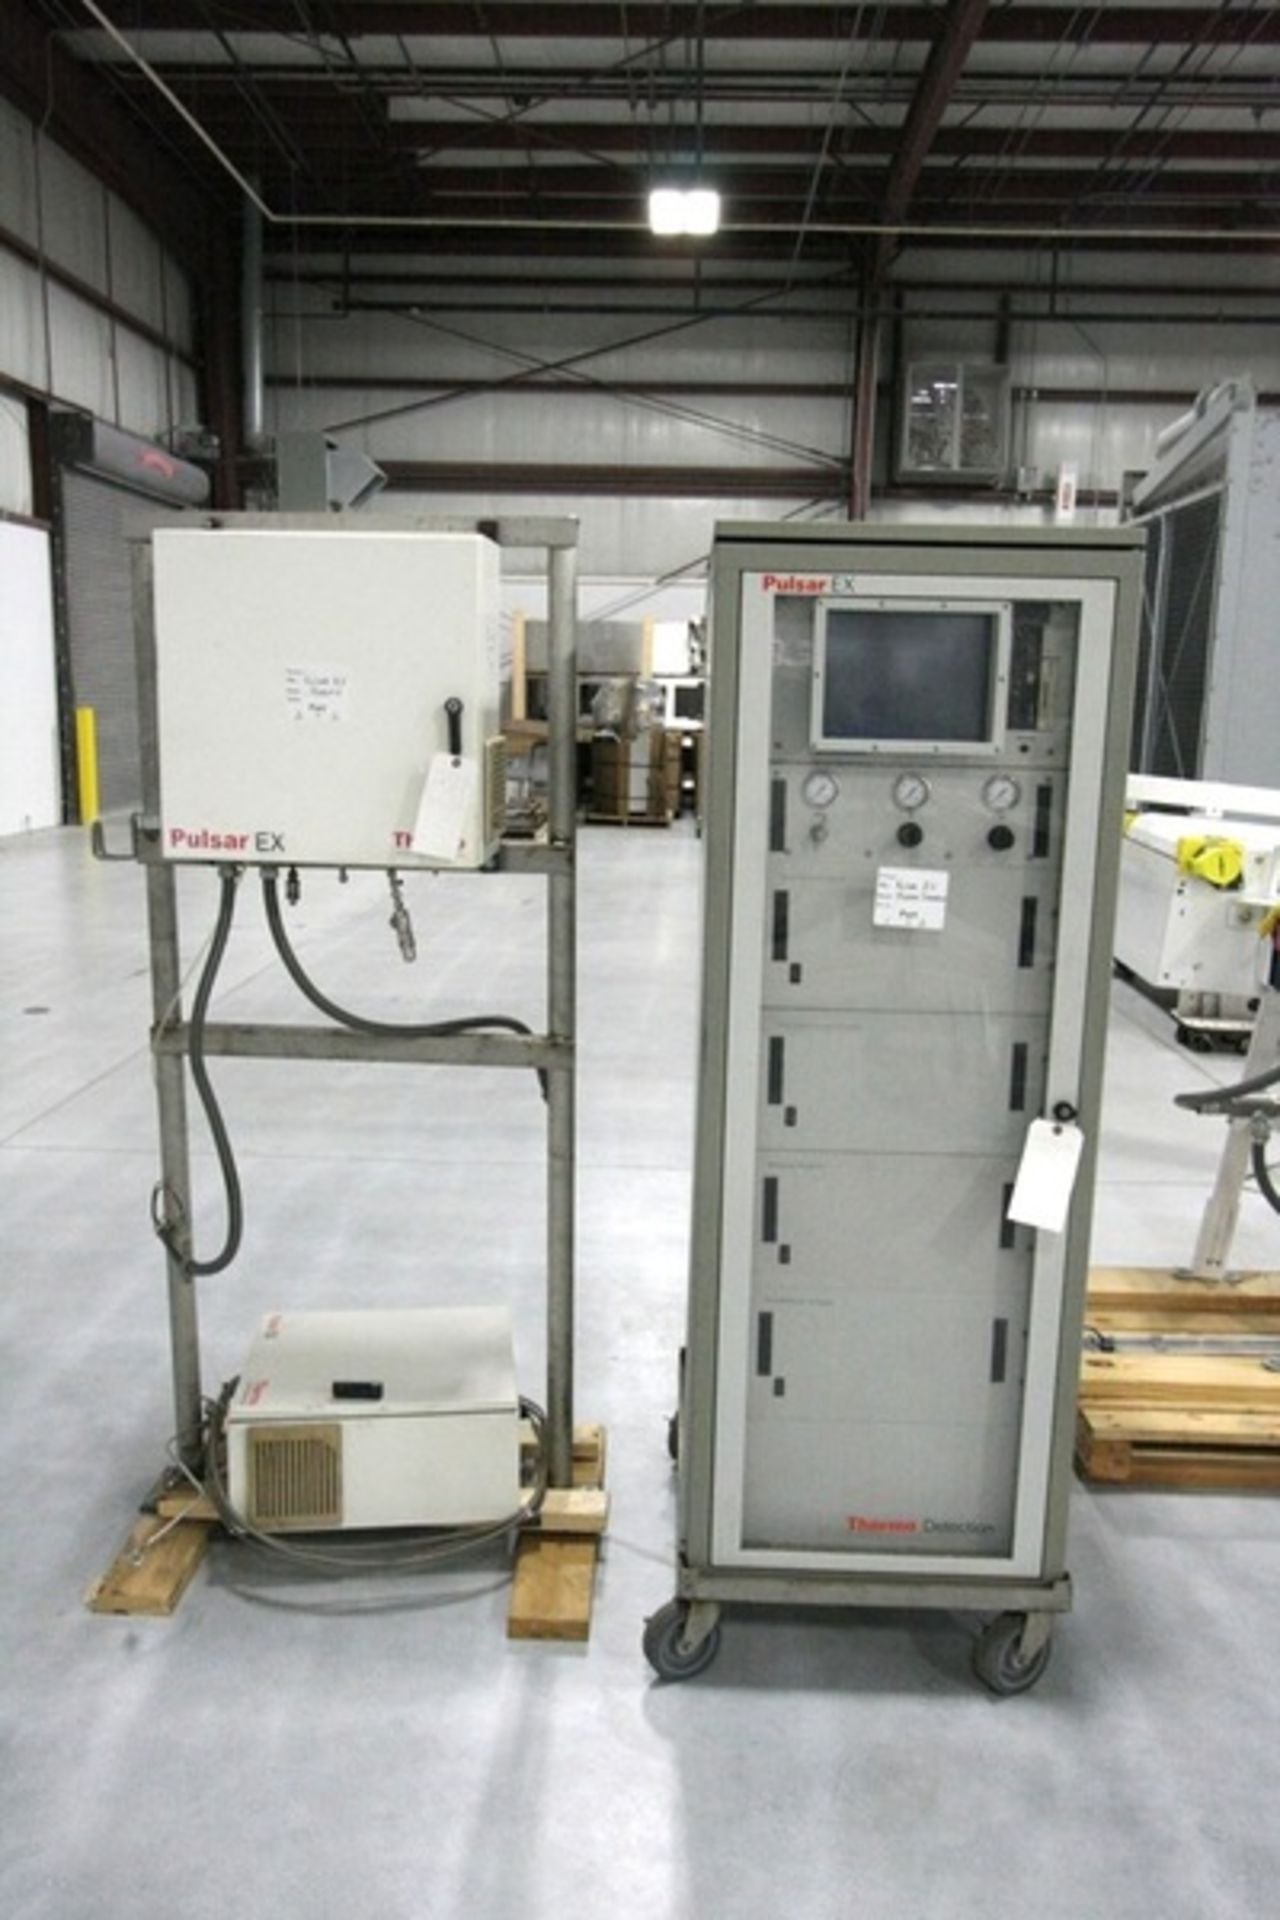 Thermo Electron Pulsar EX CO2 Monitor, Year 2009